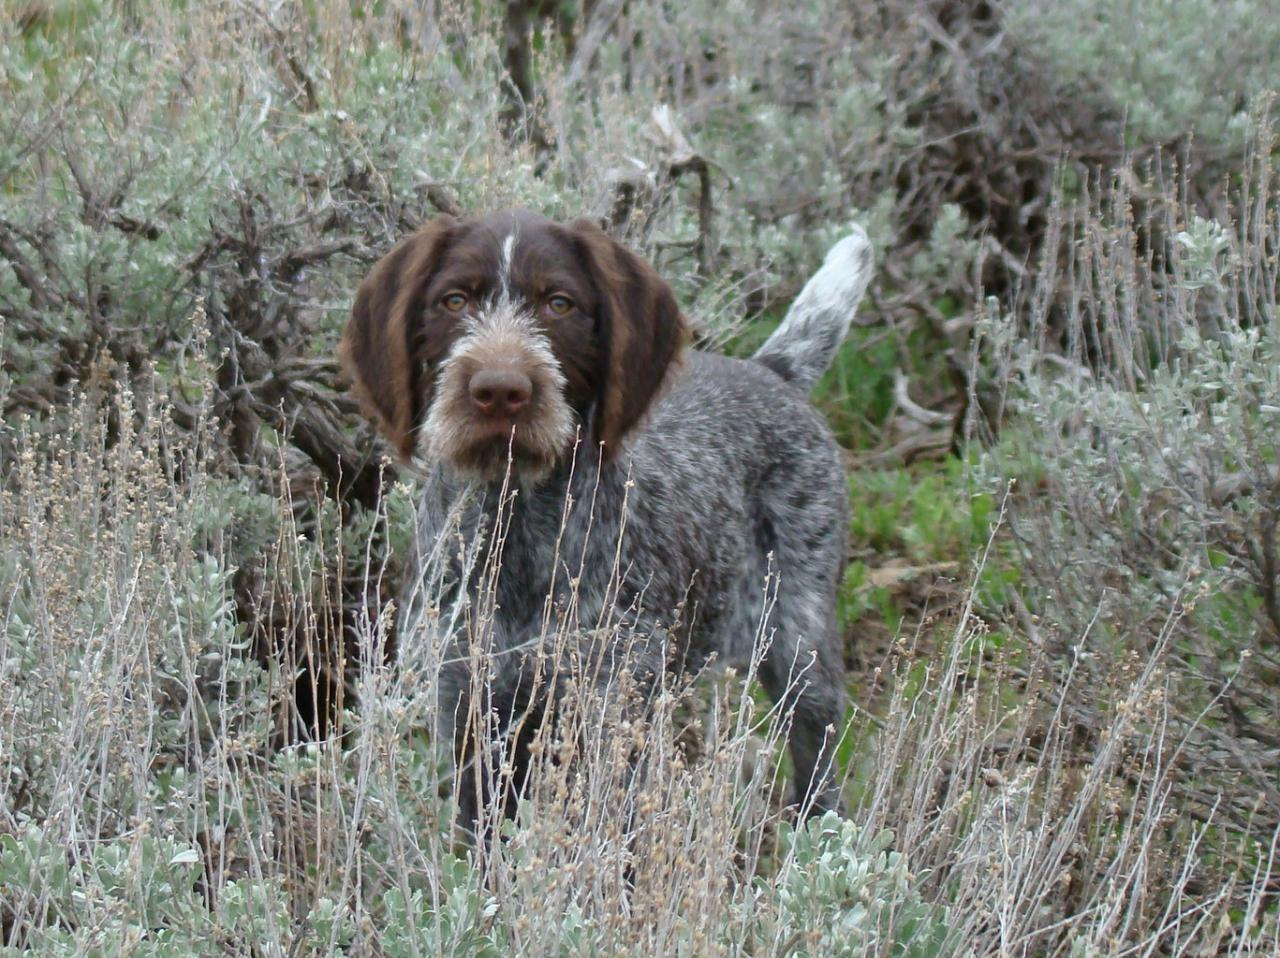 Idawire German Wirehaired Pointers - Our GWPs